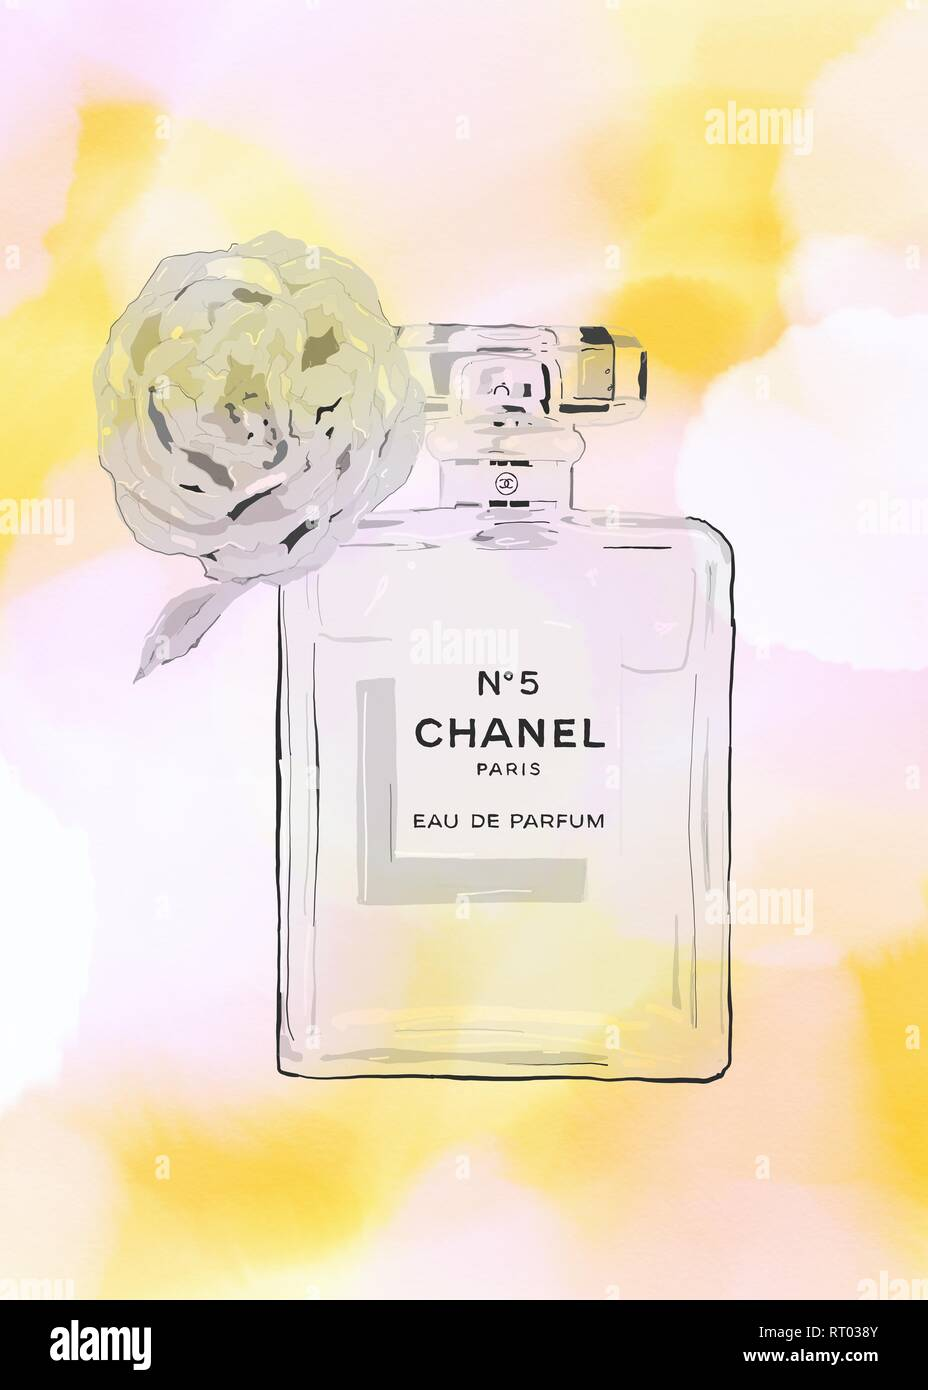 Coco Chanel No 5 Perfume Bottle With Flower Stock Photo 238489131